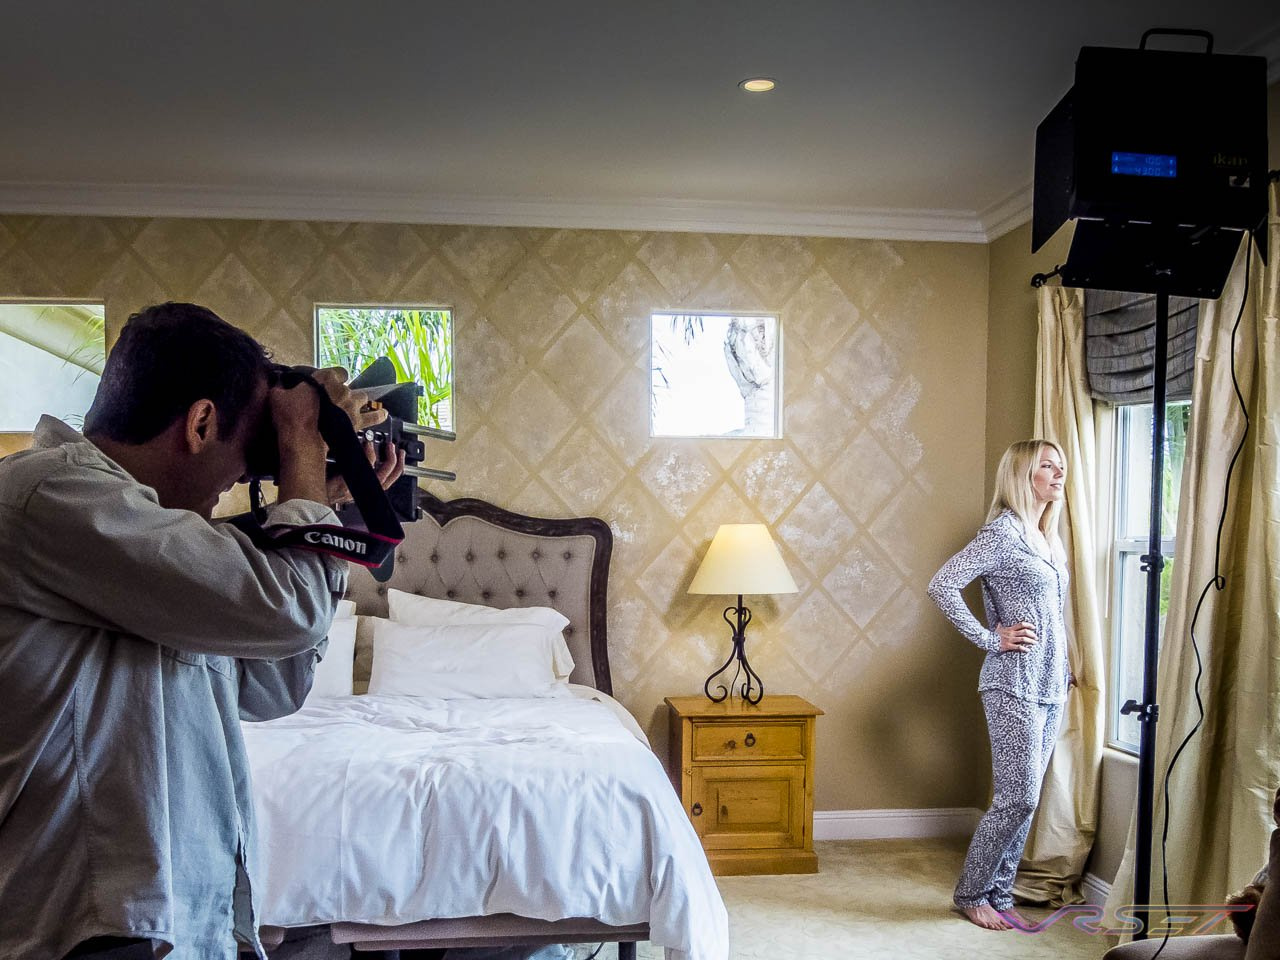 Hotel Shoots - Why Hotels Are The Perfect Location For a Fashion Shoot 1